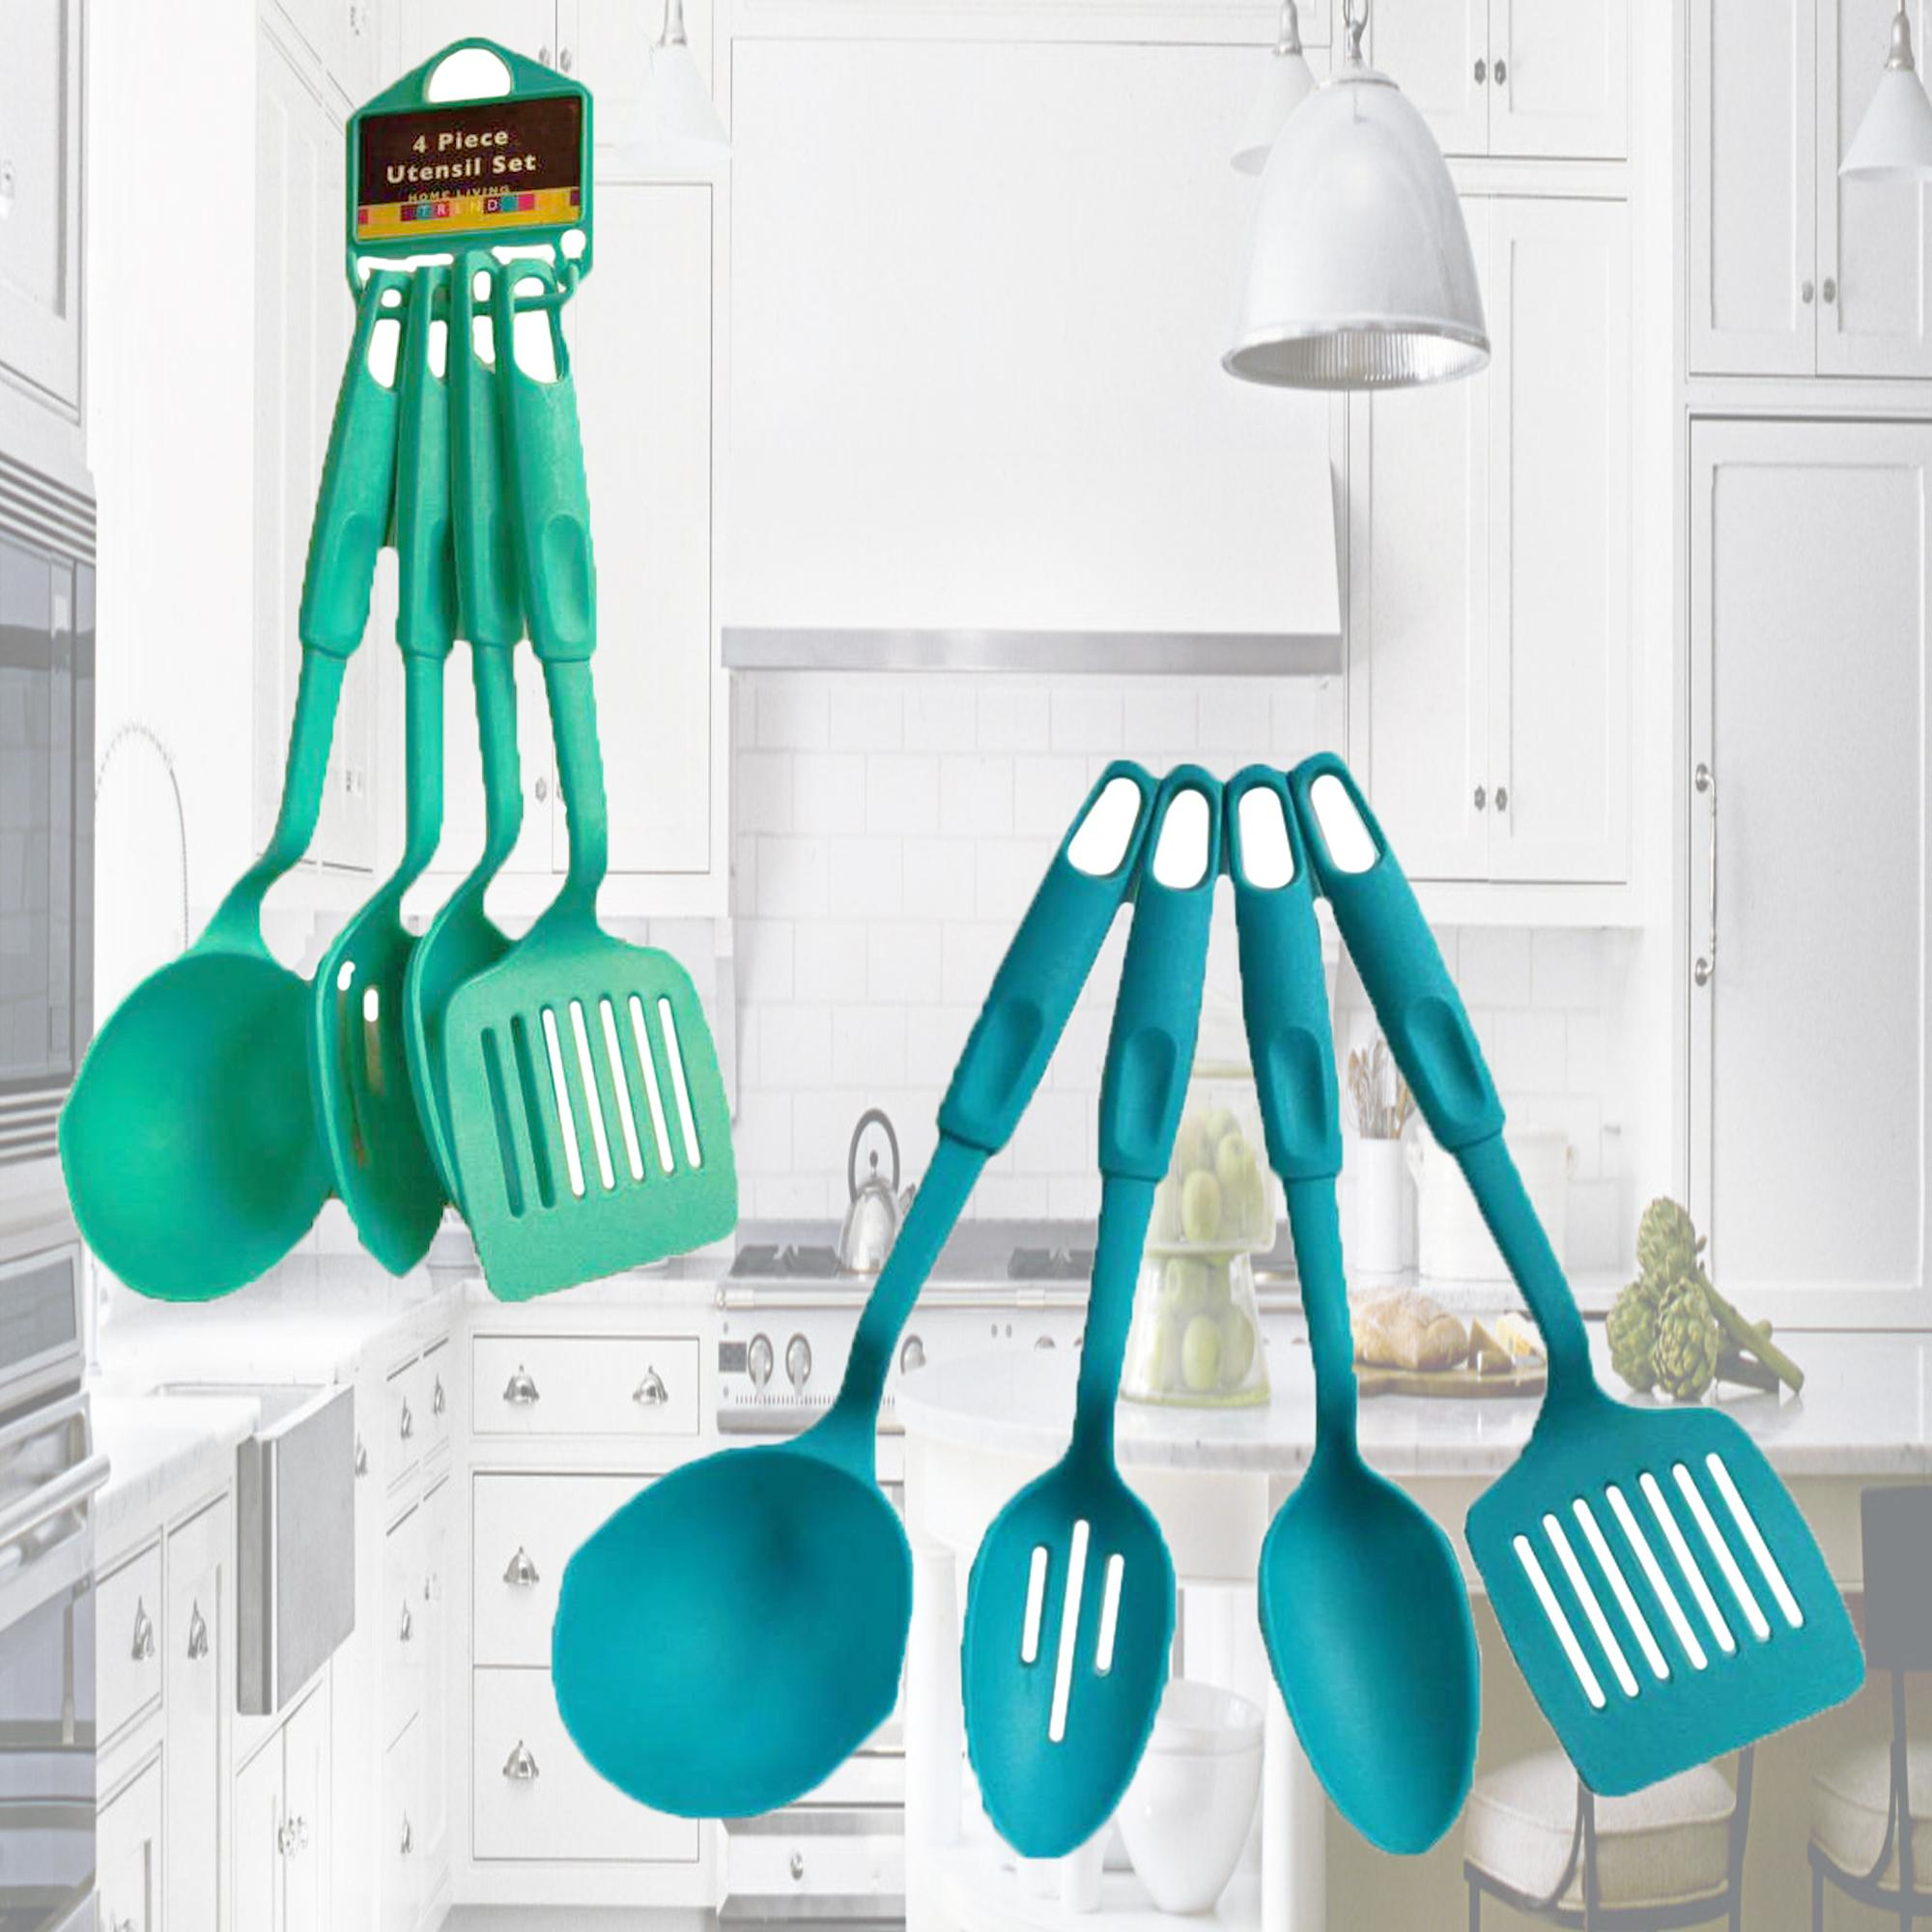 Cooking Utensils for sale - Cooking Equipment prices, brands ...